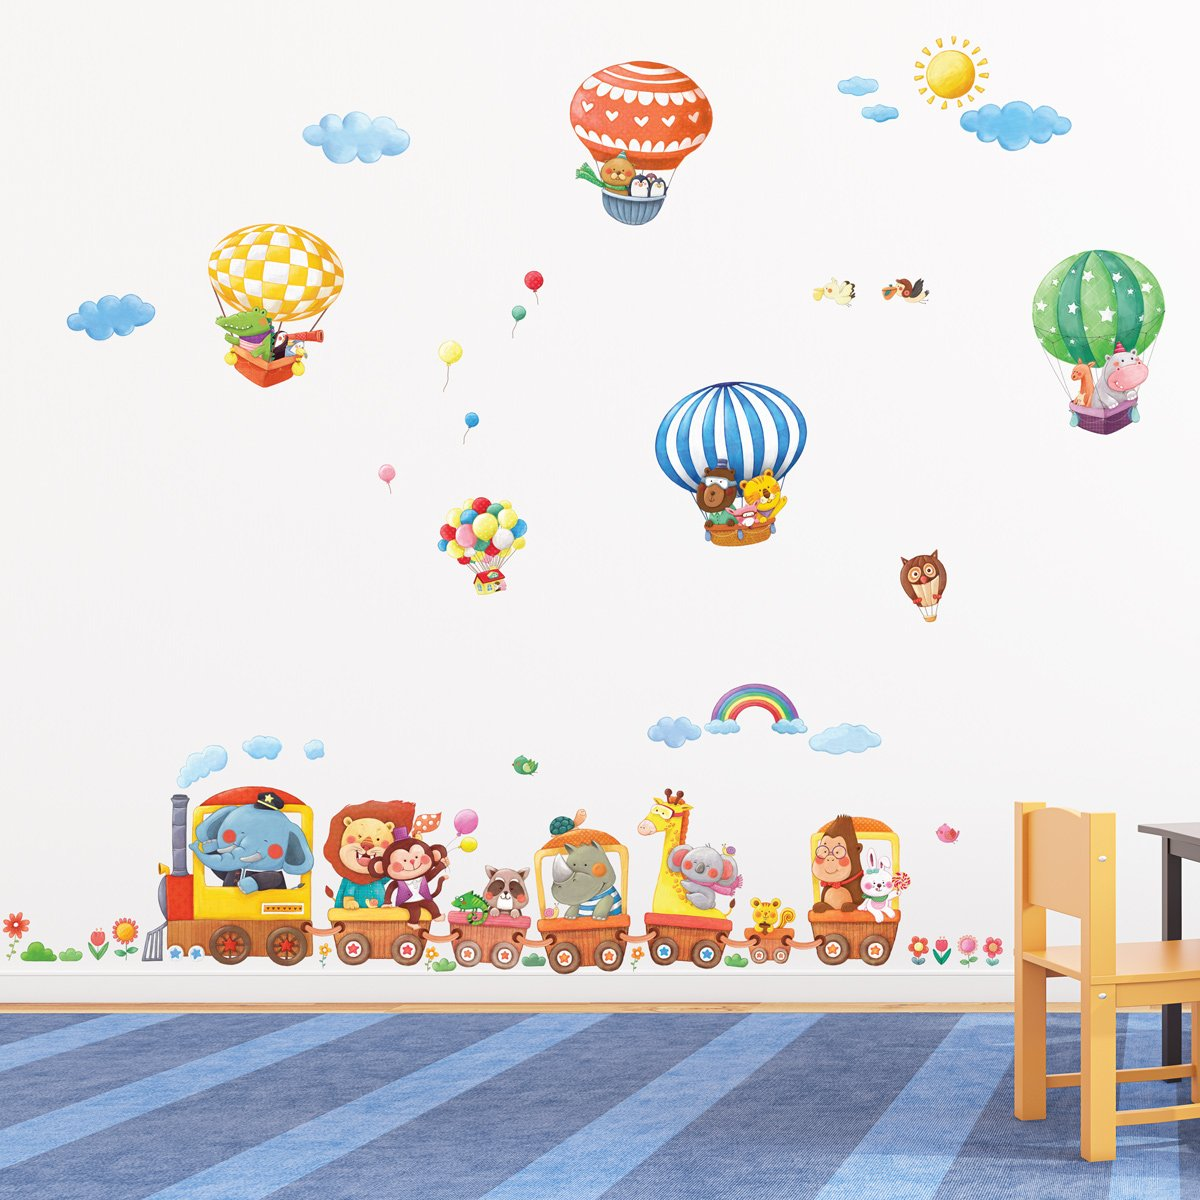 amazon com decowall da 1406 animal train hot air balloons peel amazon com decowall da 1406 animal train hot air balloons peel and stick nursery kids wall decals stickers home kitchen